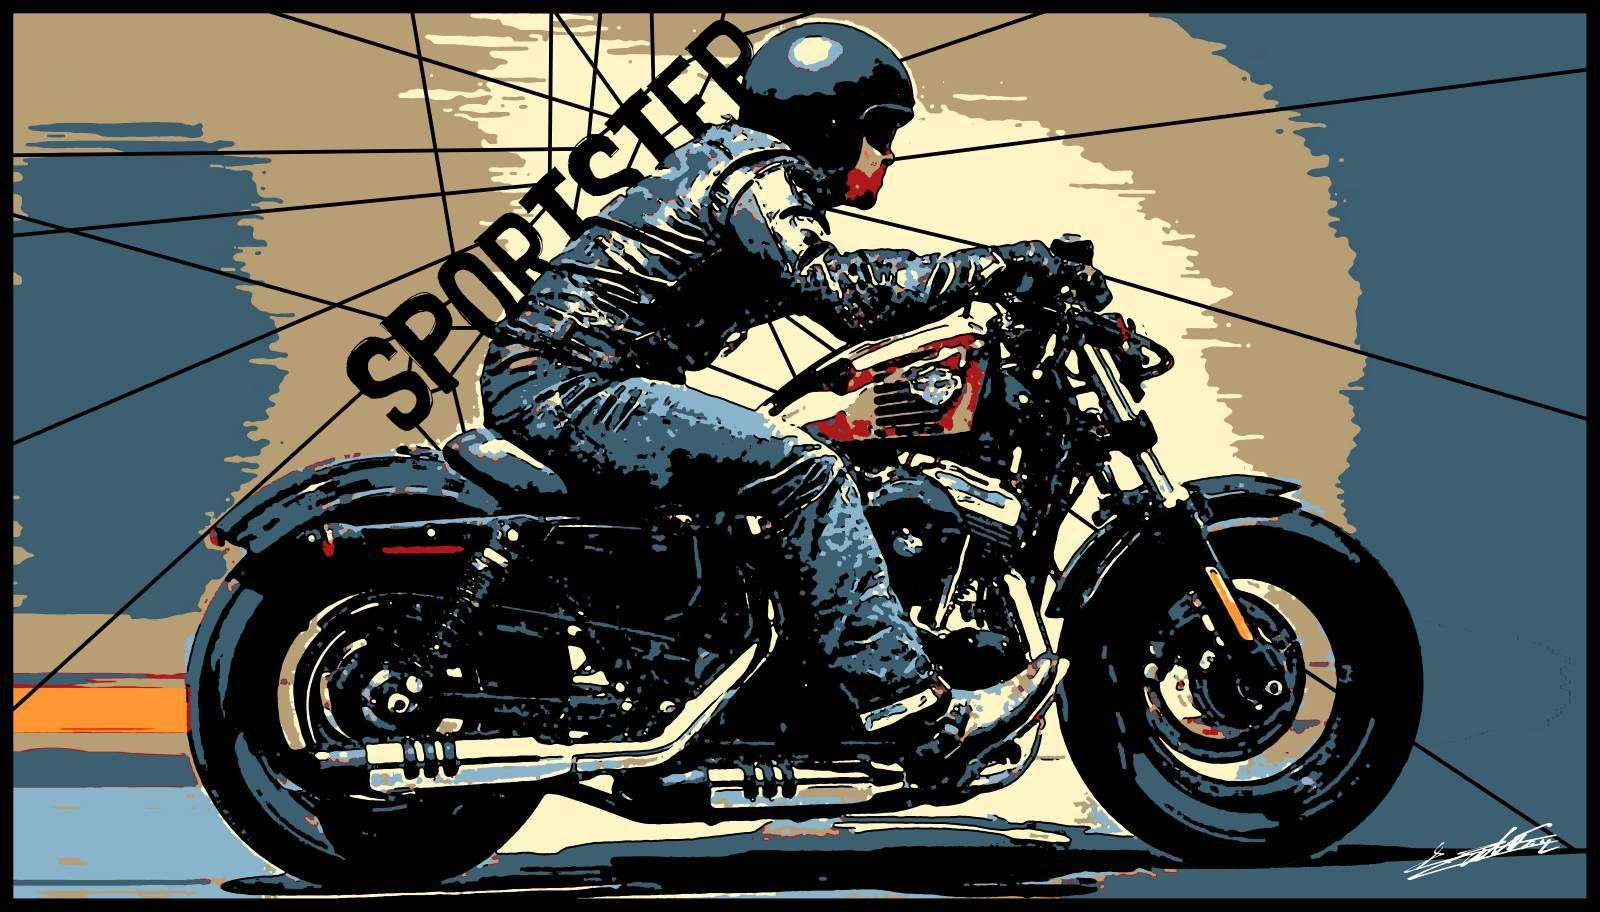 tableau harley moto biker peinture moderne pop art peinture acrylique pop art balestra art. Black Bedroom Furniture Sets. Home Design Ideas